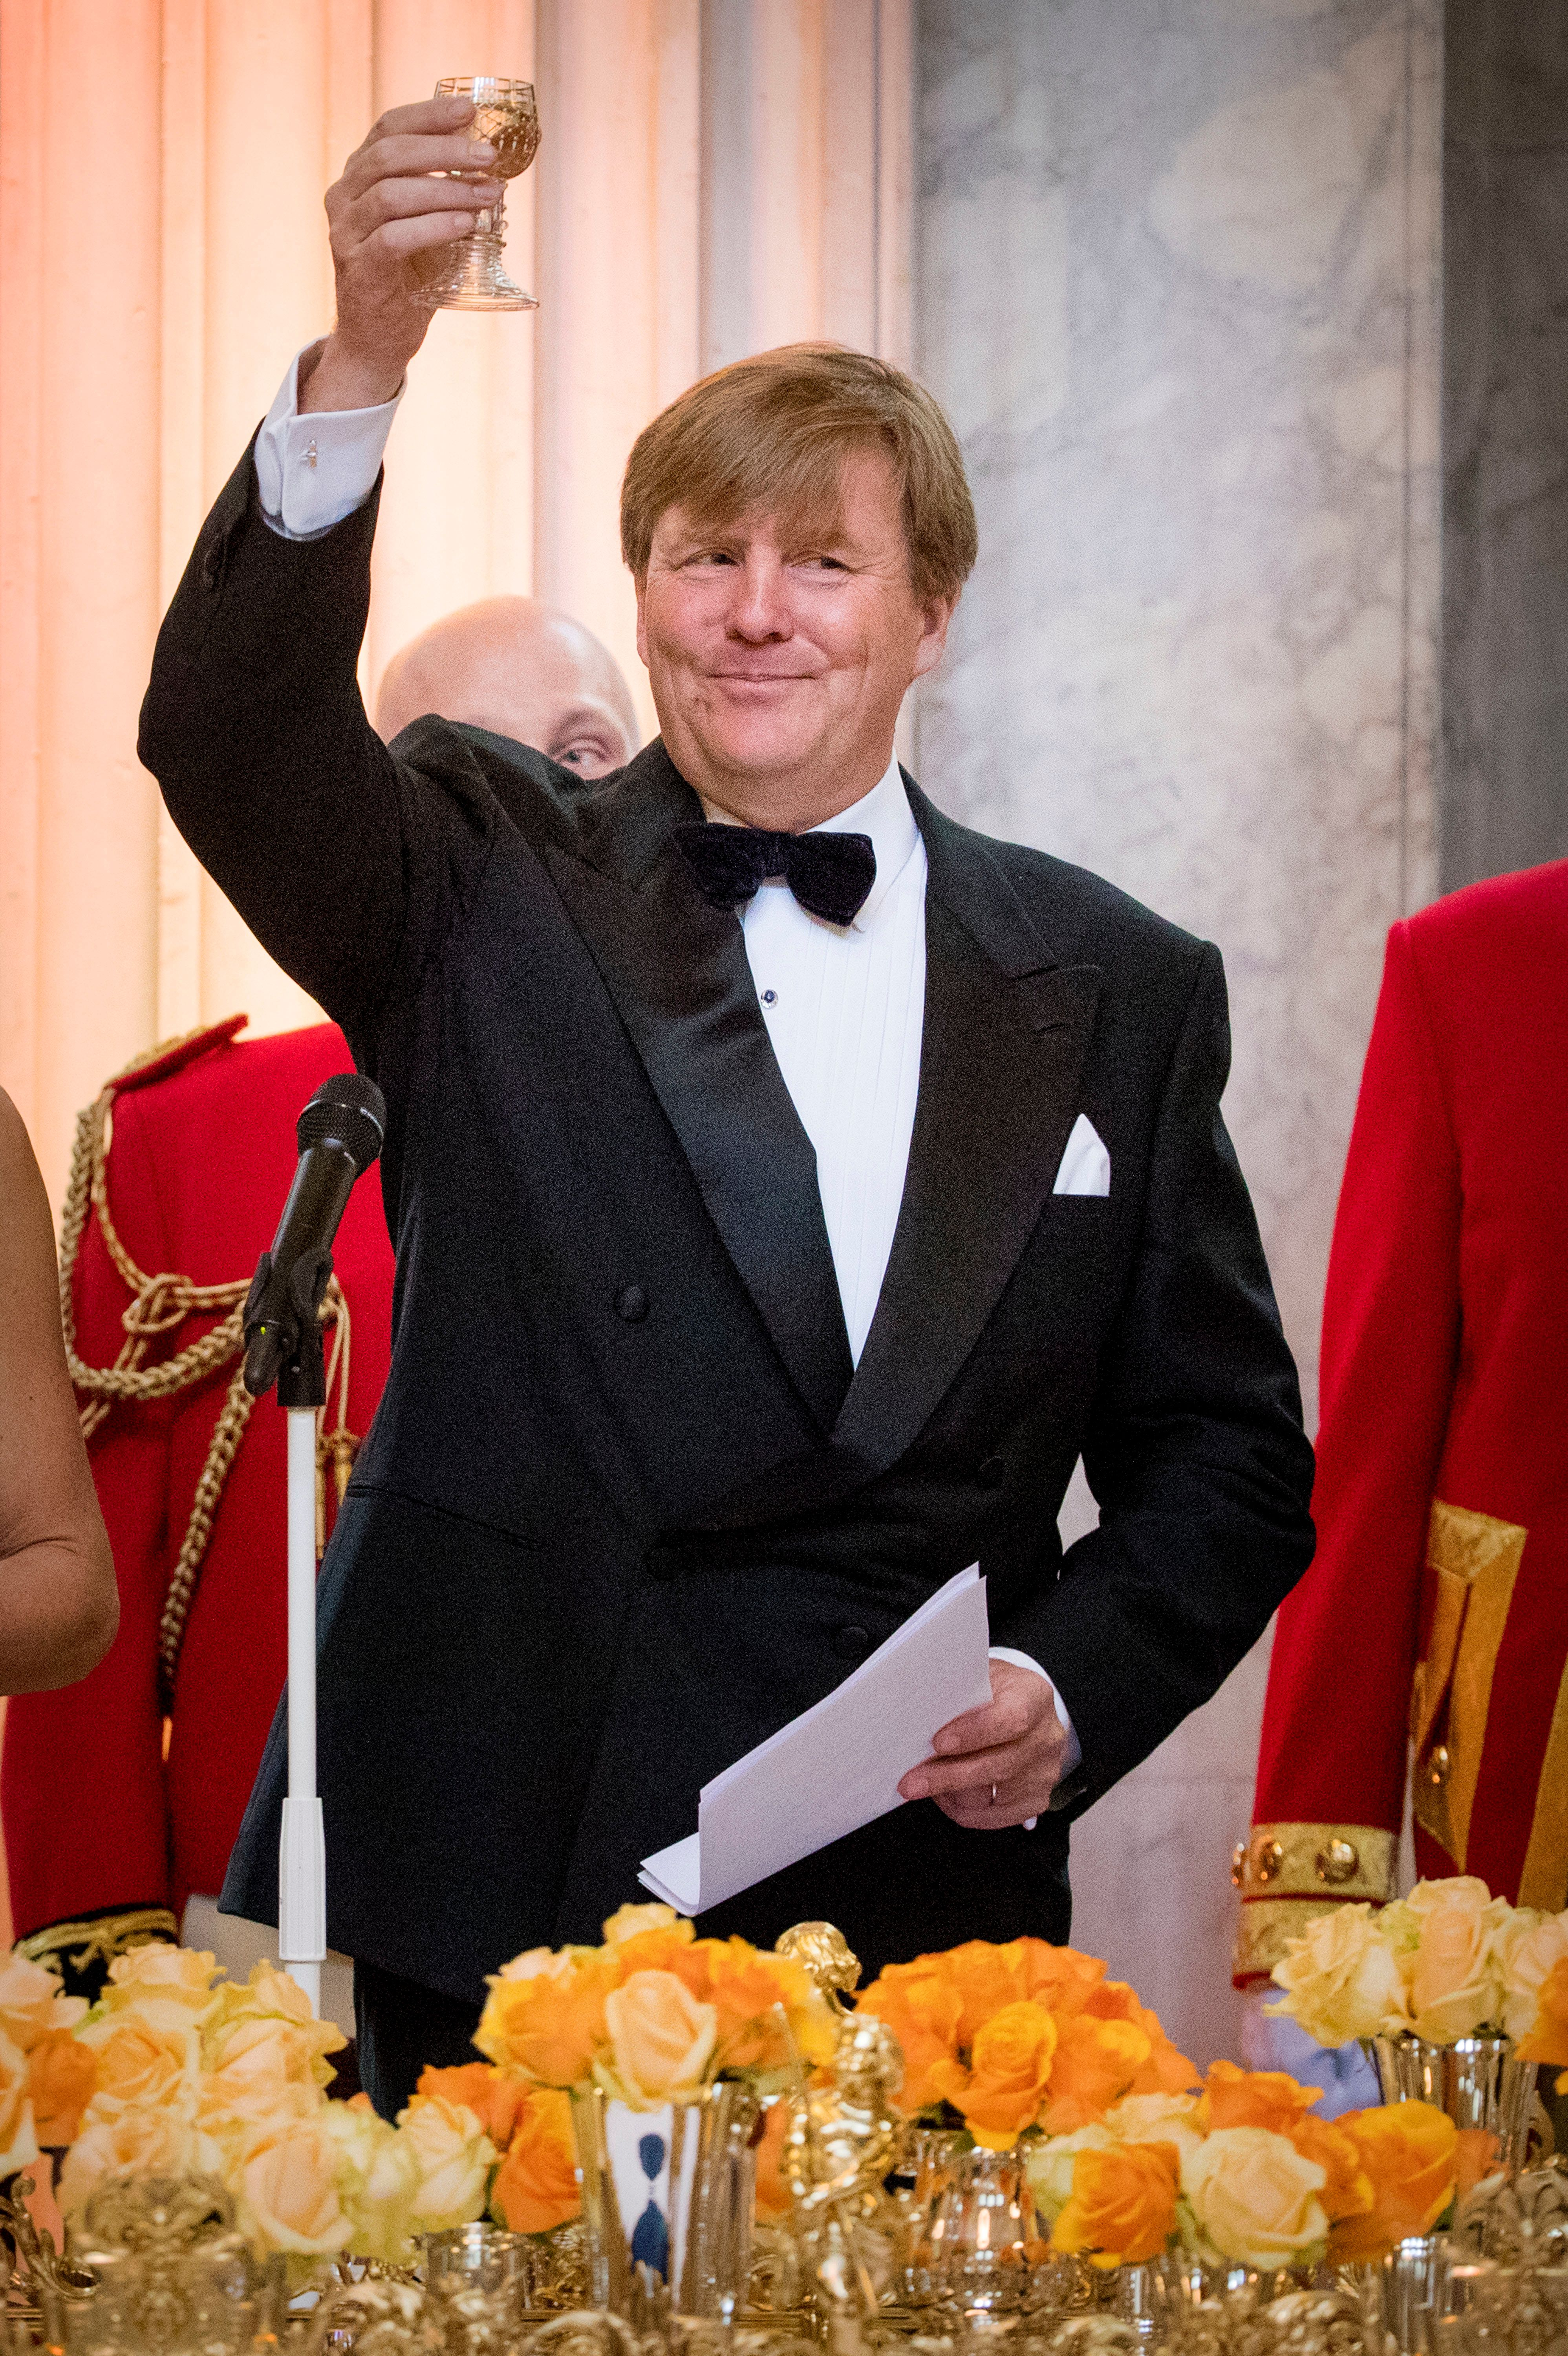 Dutch King Willem-Alexander has been co-piloting commercial planes since 2001, he recently confirmed.